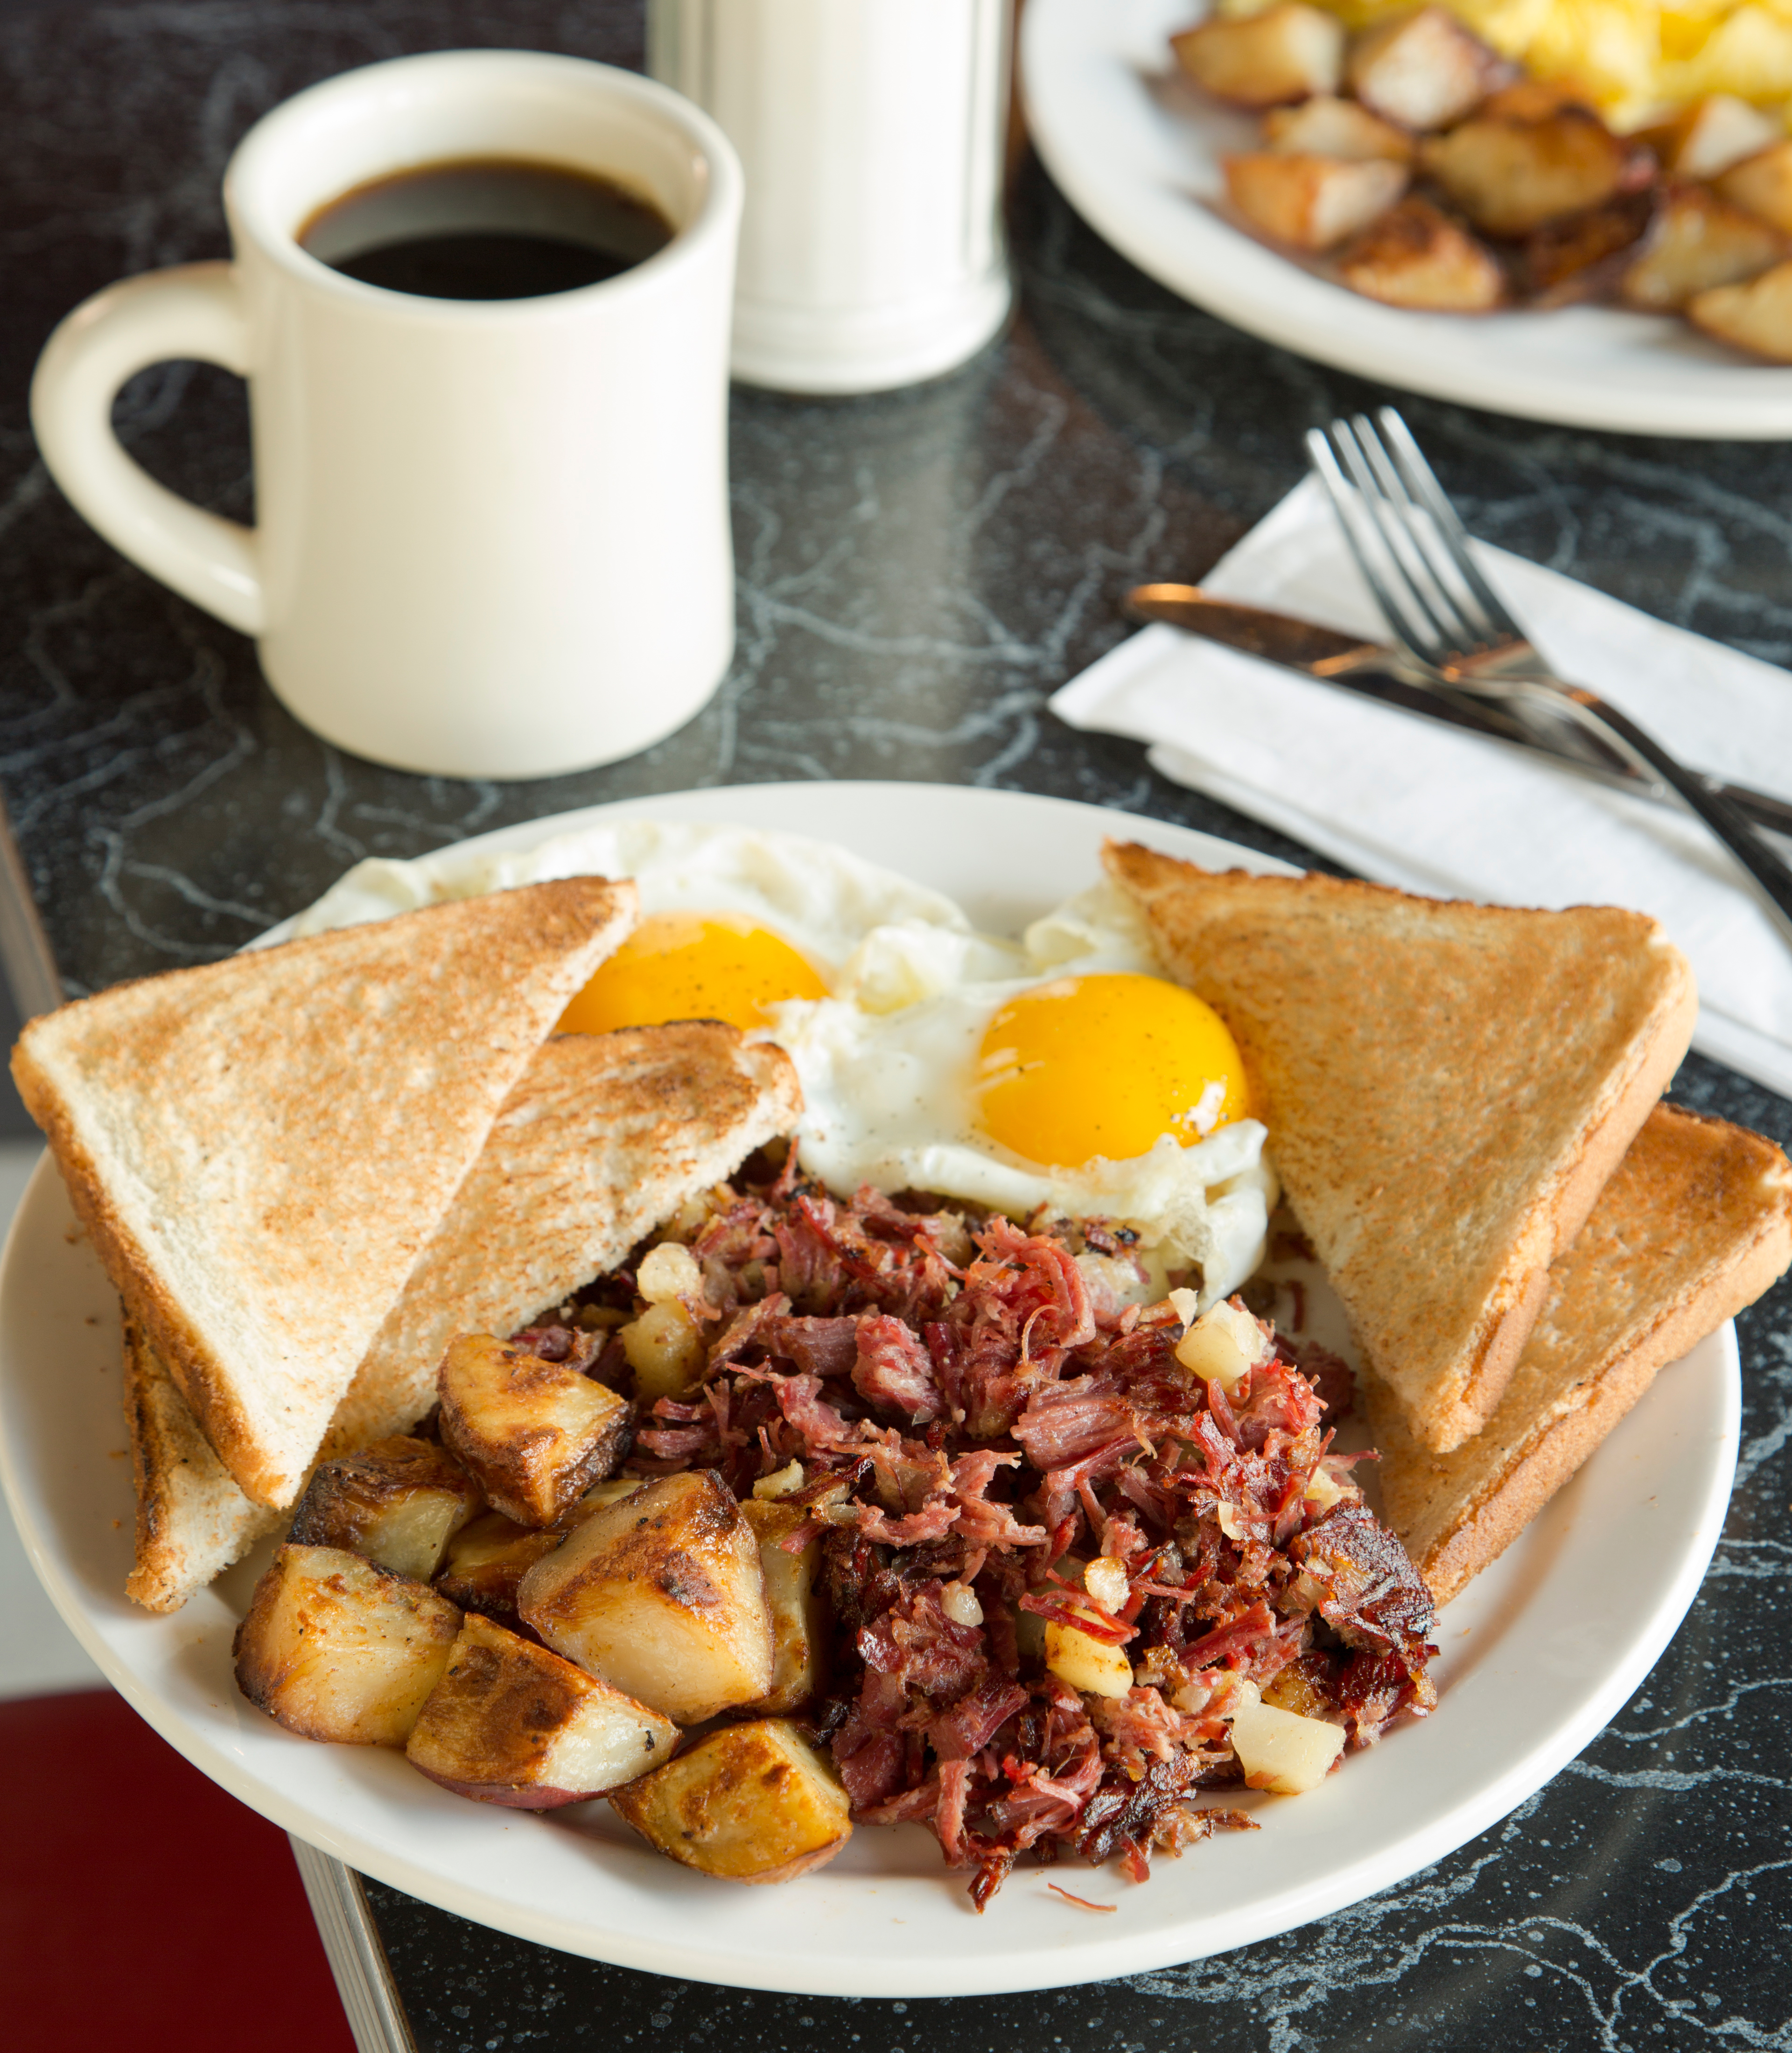 Where to find 10 perfect breakfasts in Boston